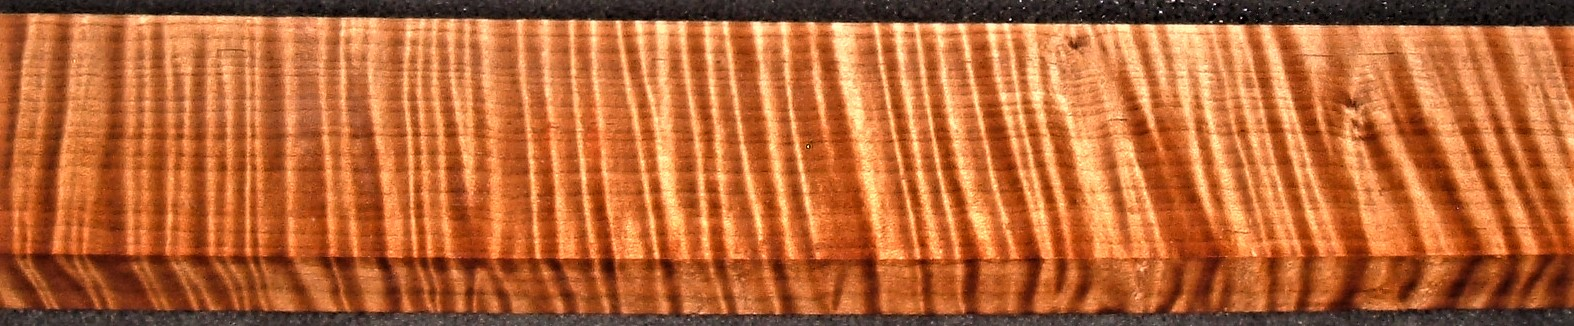 QRM2009-162JK, 1-1/8x3x48, Quartersawn Roasted Curly Maple